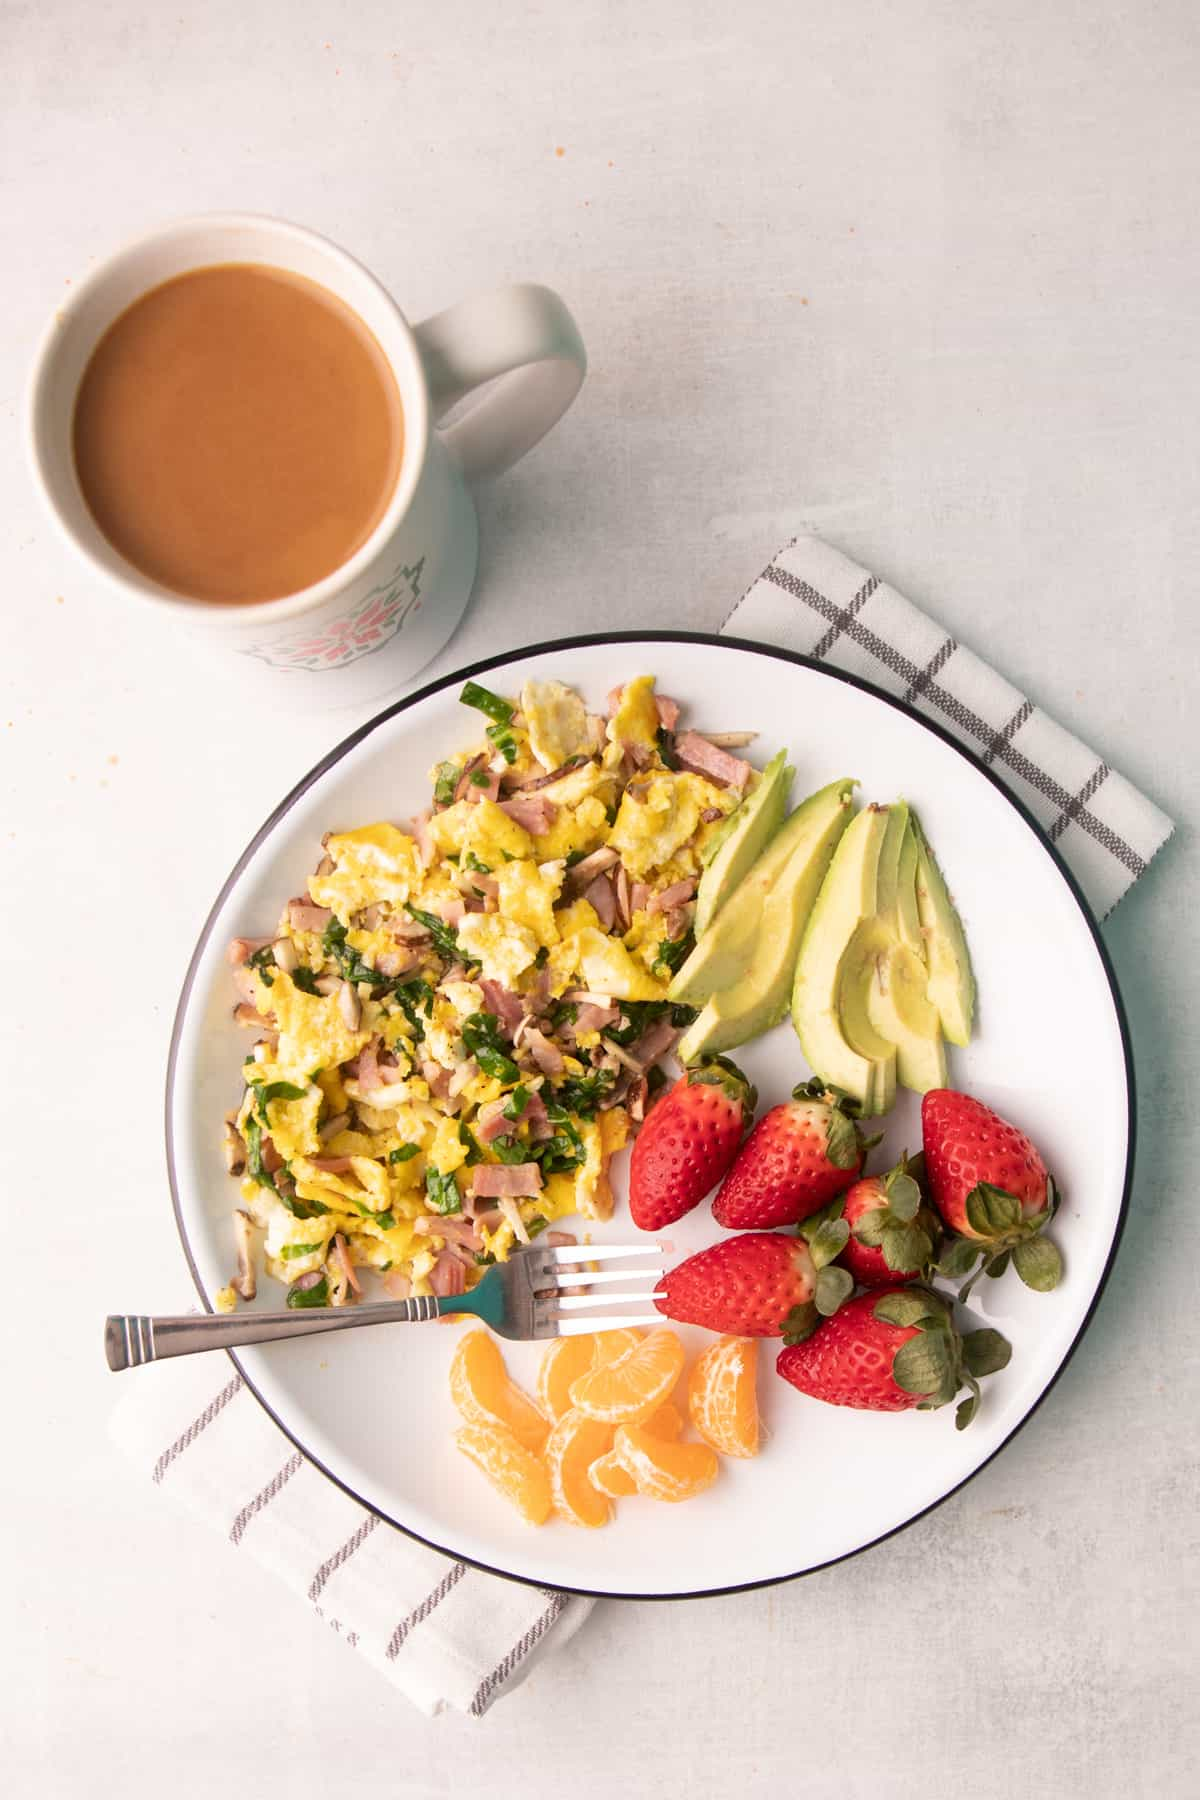 Breakfast on a white plate: egg scramble, fruit, and avocado. A mug sits next to the plate.